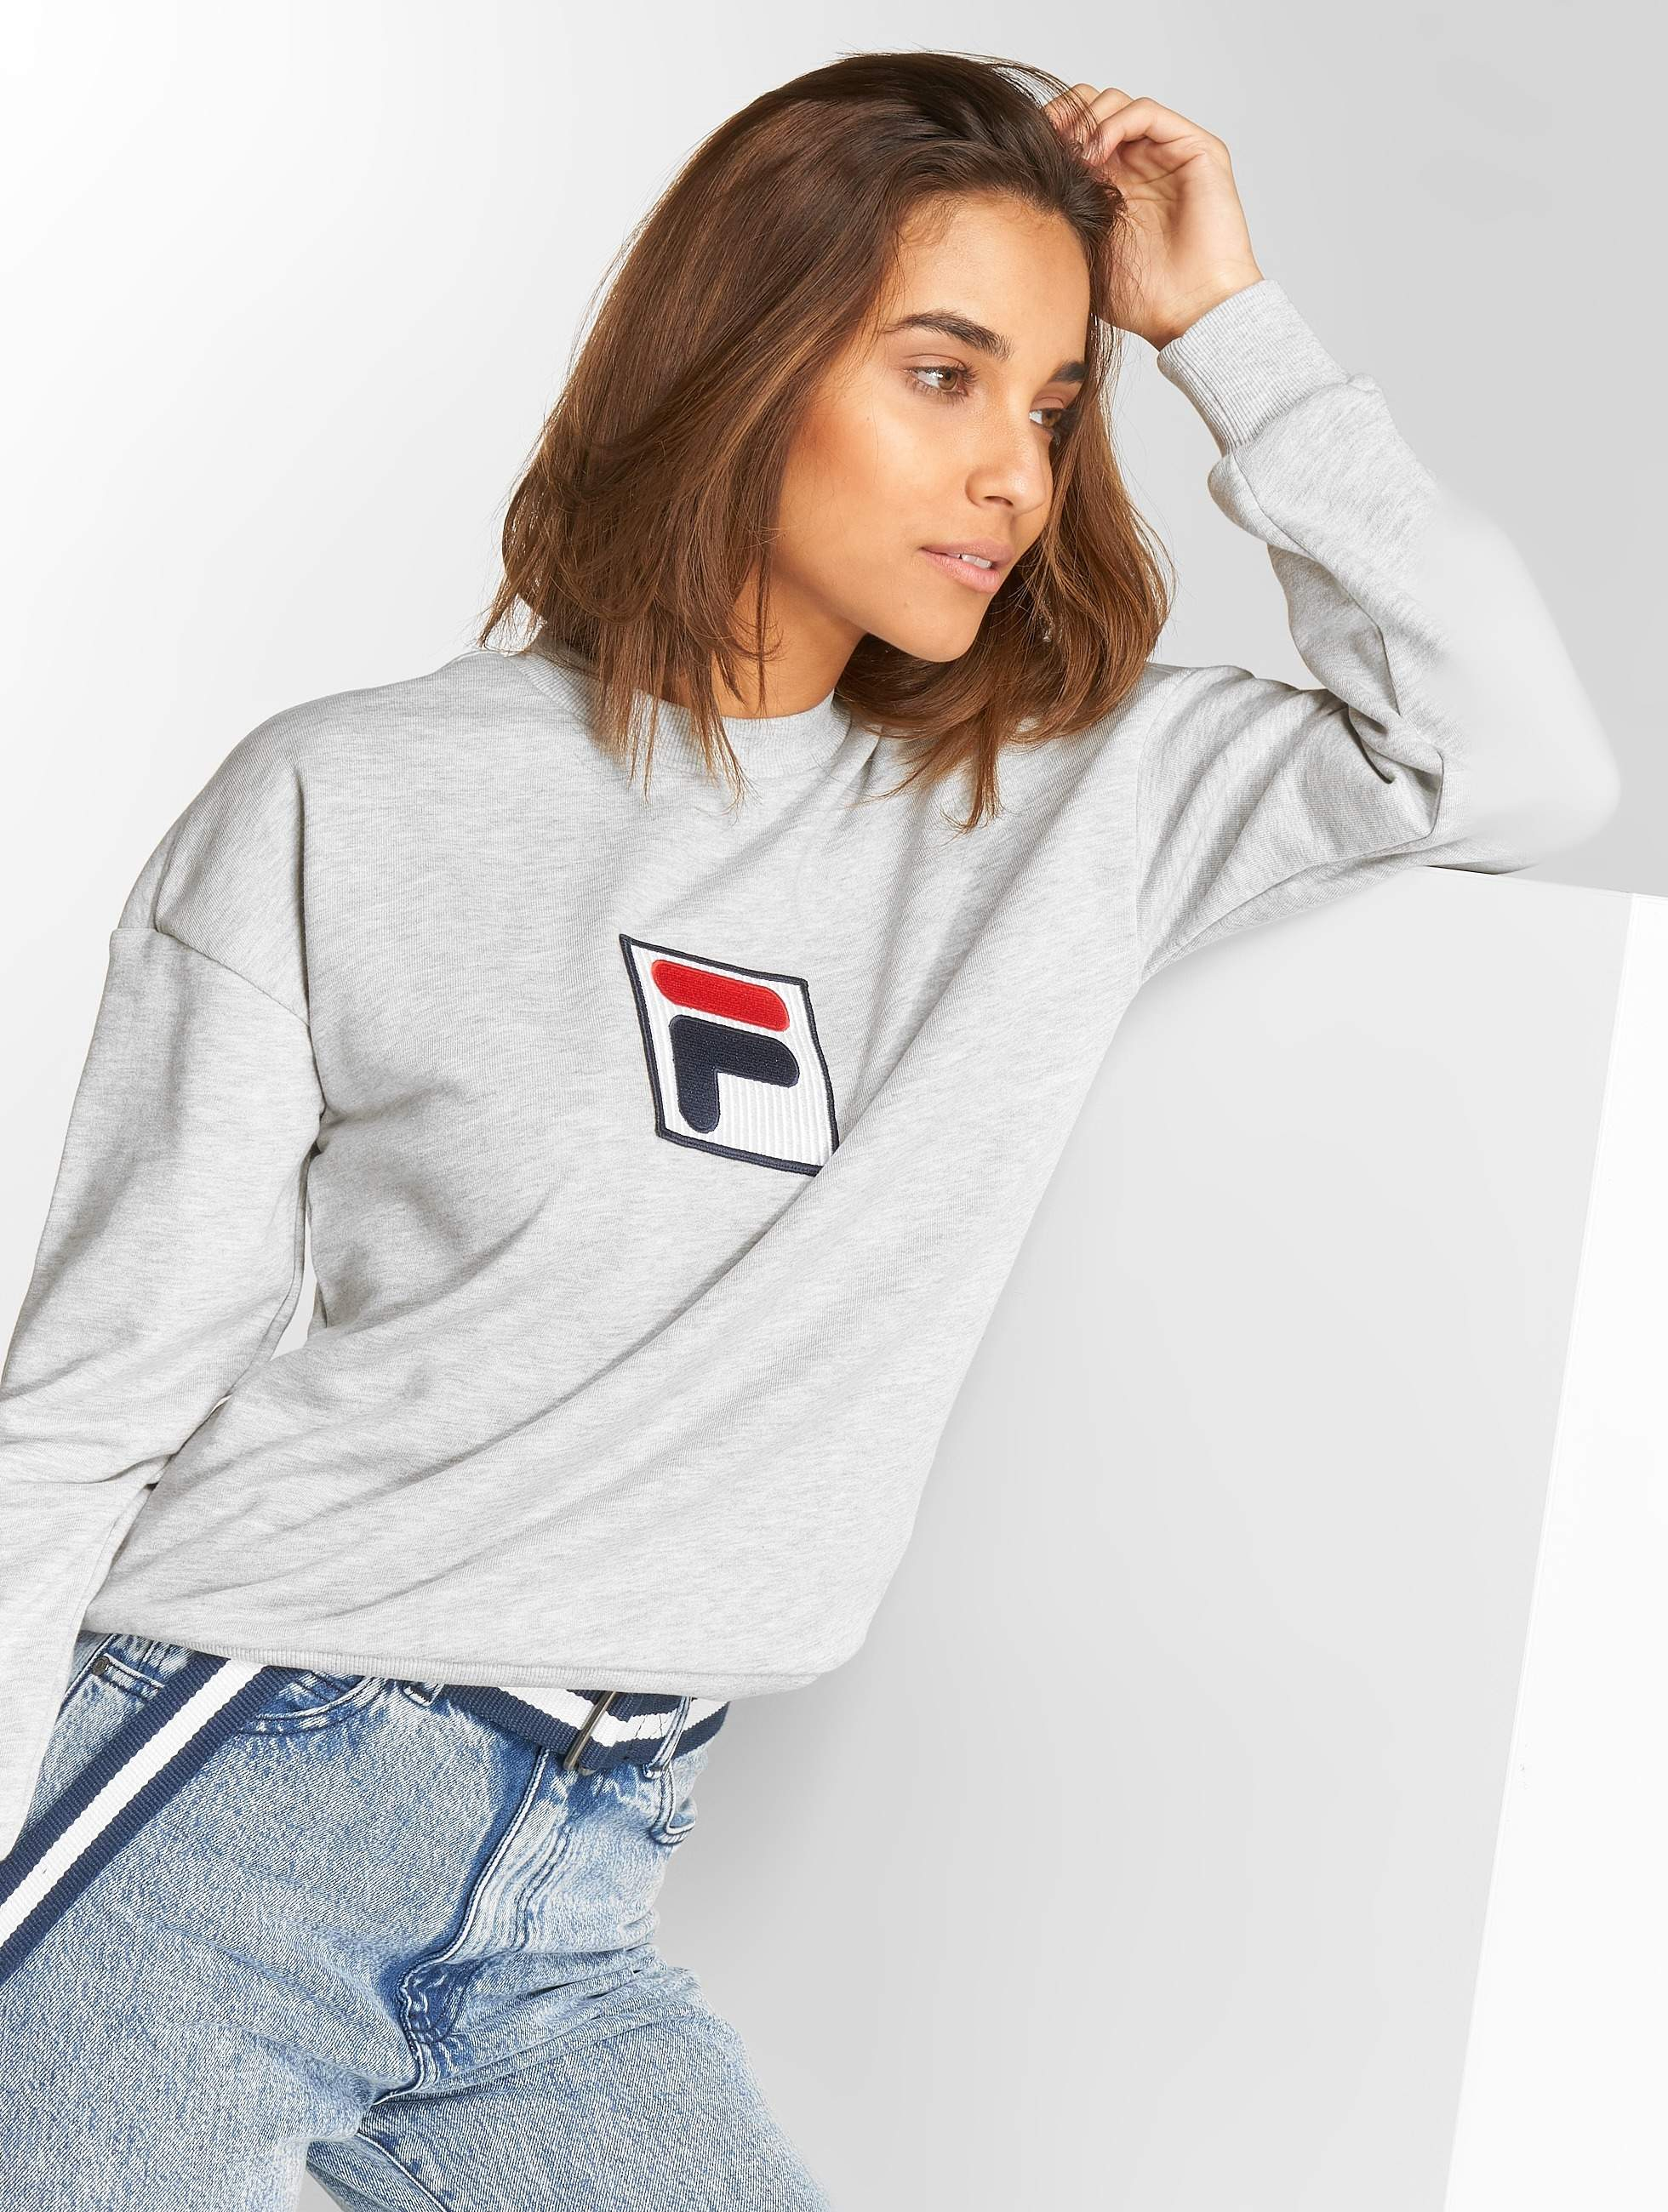 FILA Urban Line Erika 2.0 Sweatshirt Light Grey Melange Bros